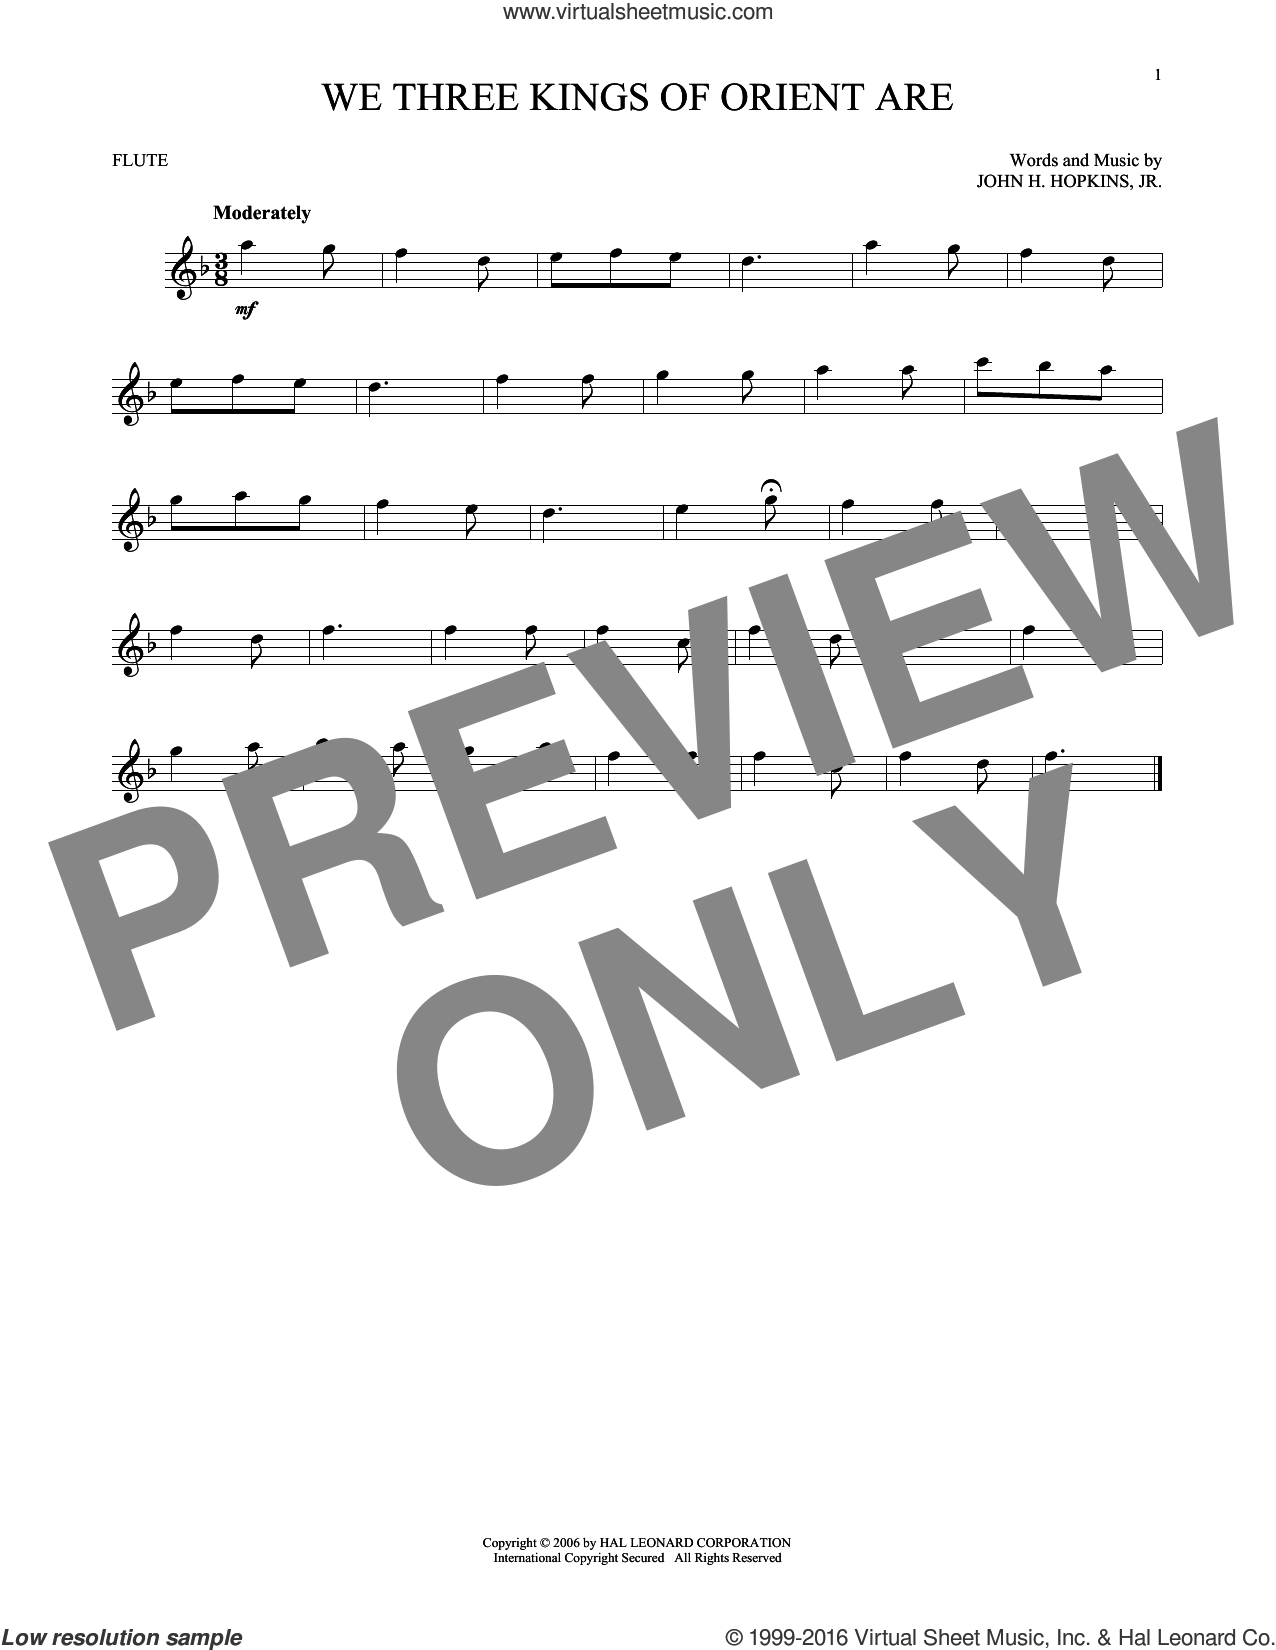 We Three Kings Of Orient Are sheet music for flute solo by John H. Hopkins, Jr., intermediate skill level